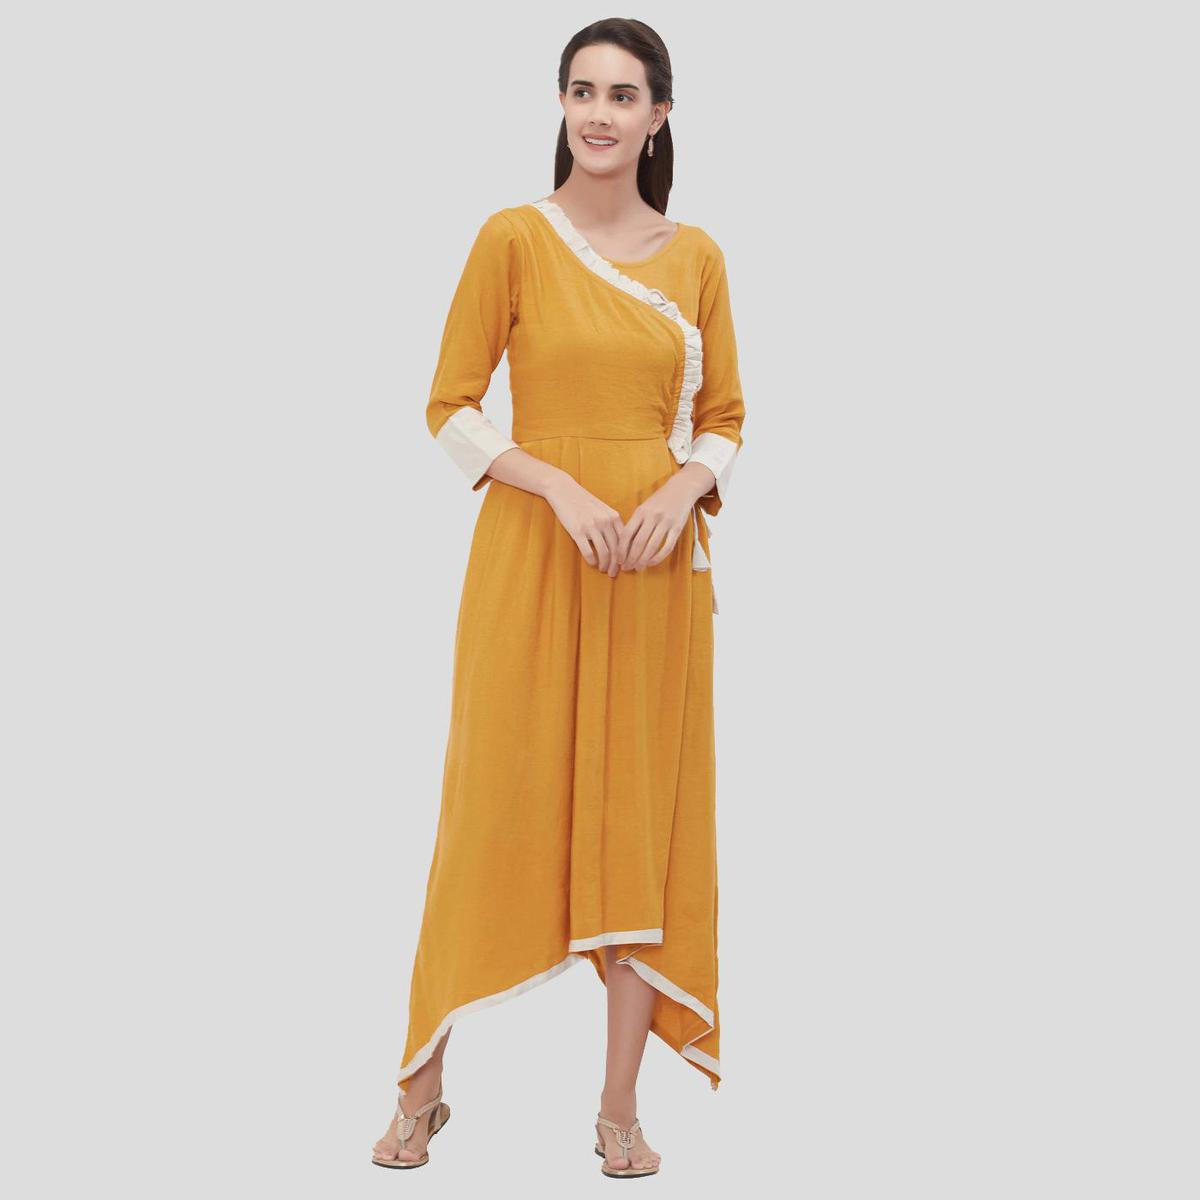 Mesmeric Yellow-White Colored Casual Wear Solid High To Low Rayon Flex Kurti